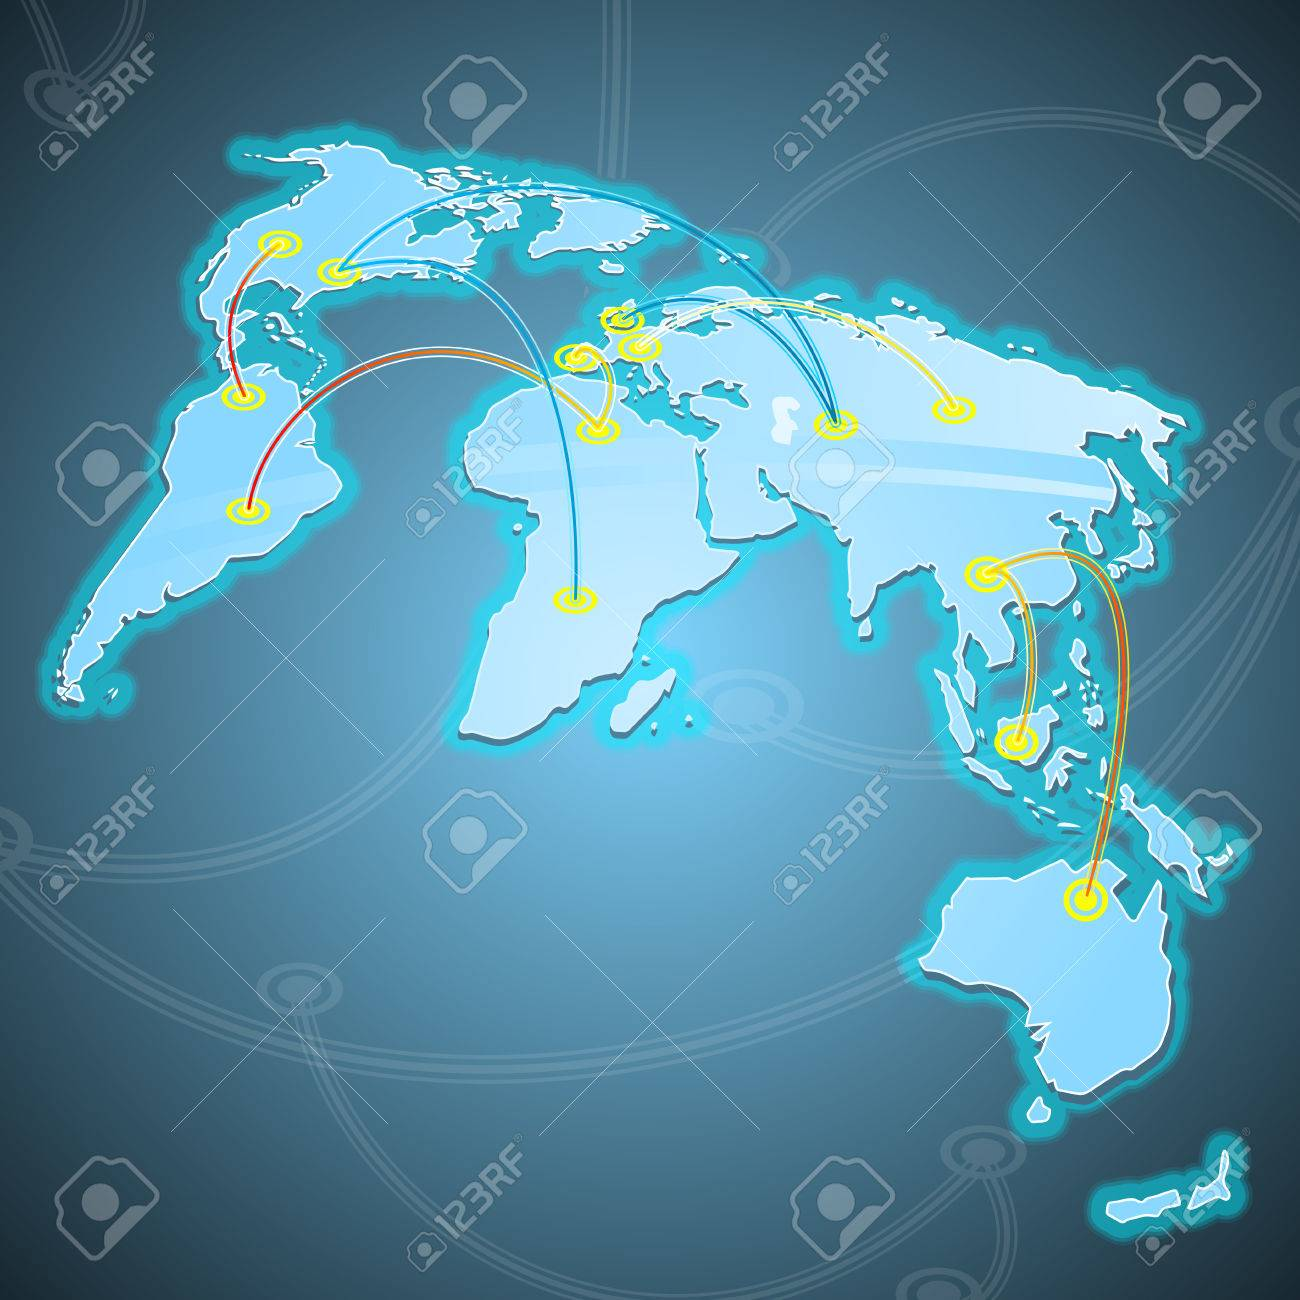 Illustration of some world trades routes. Stock Vector - 5518513